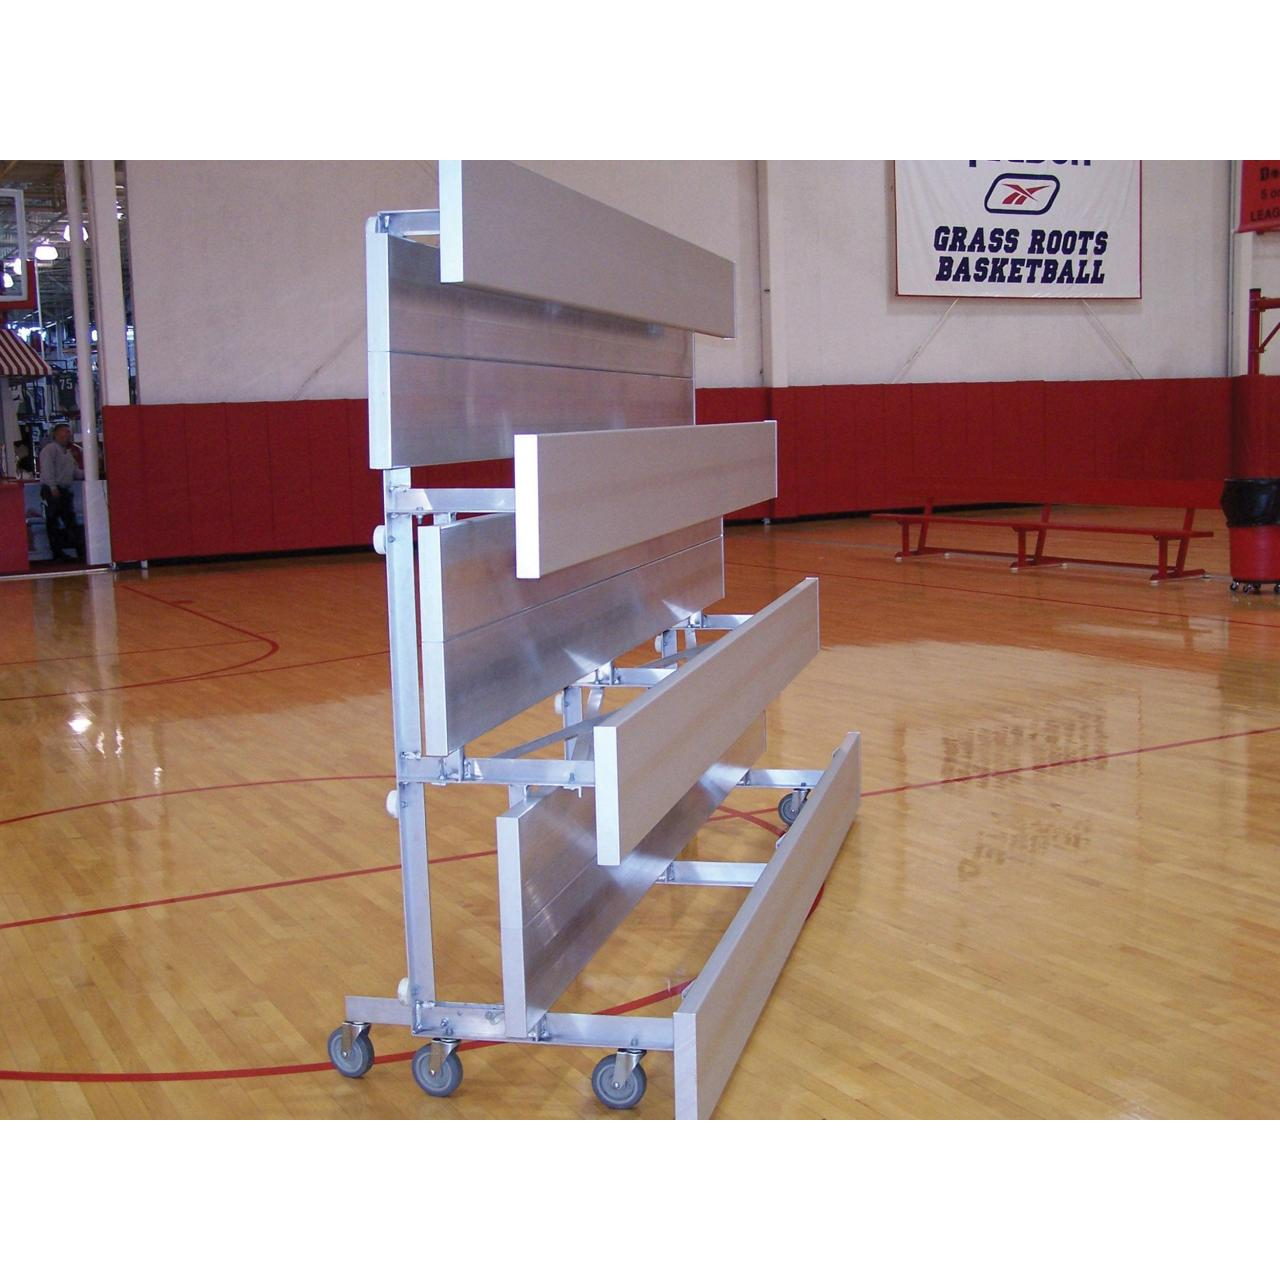 Buy cheap Baseball-Softball Tip-N-Roll Bleachers 2 Row 15' Tip-N-Roll Bleacher from wholesalers